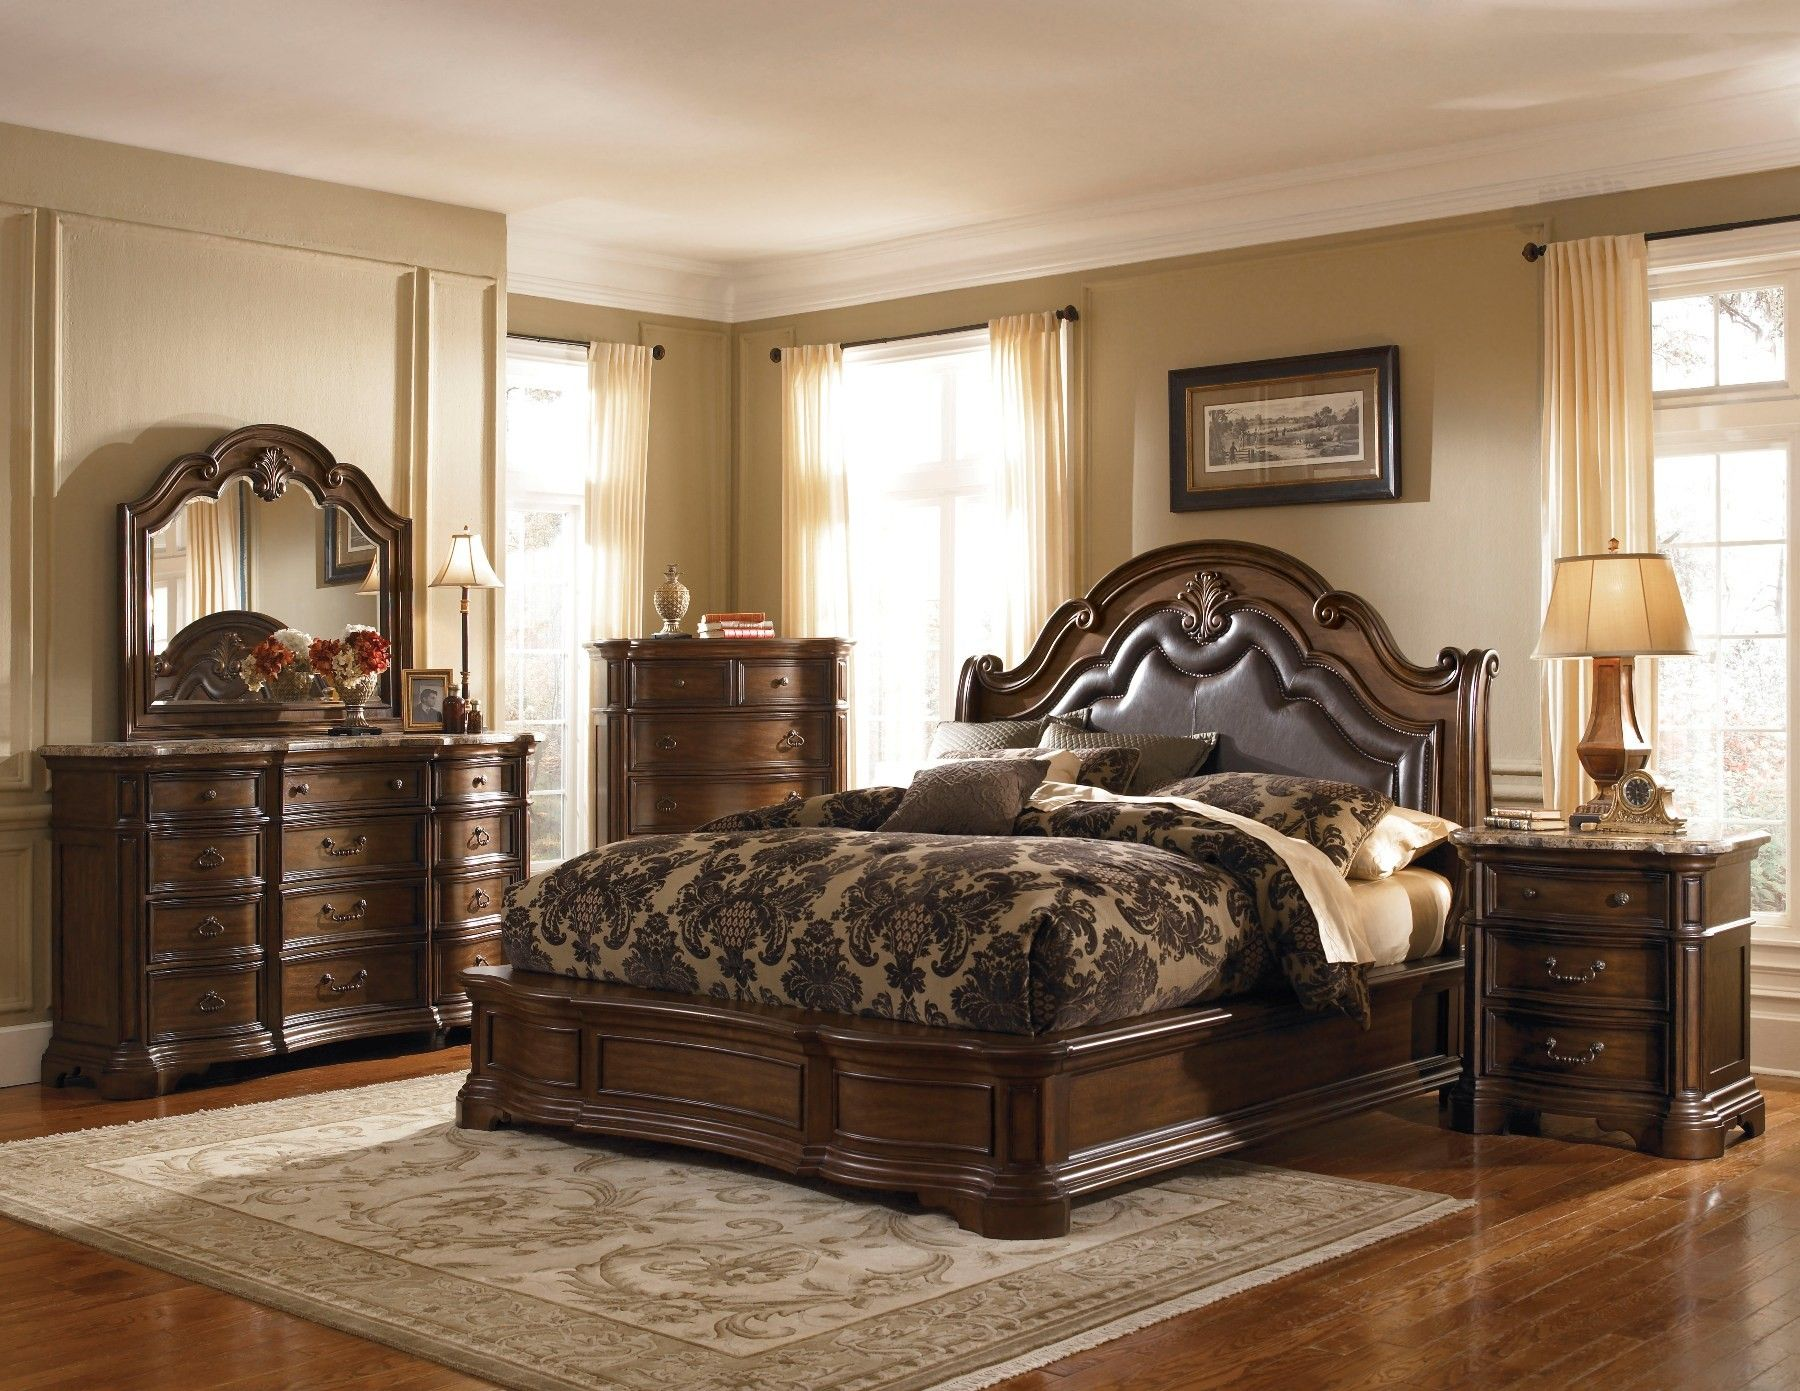 Pulaski Bedroom Furniture Wholesale Closeouts | Courtland Bedroom Set By Pulaski  Furniture   504170